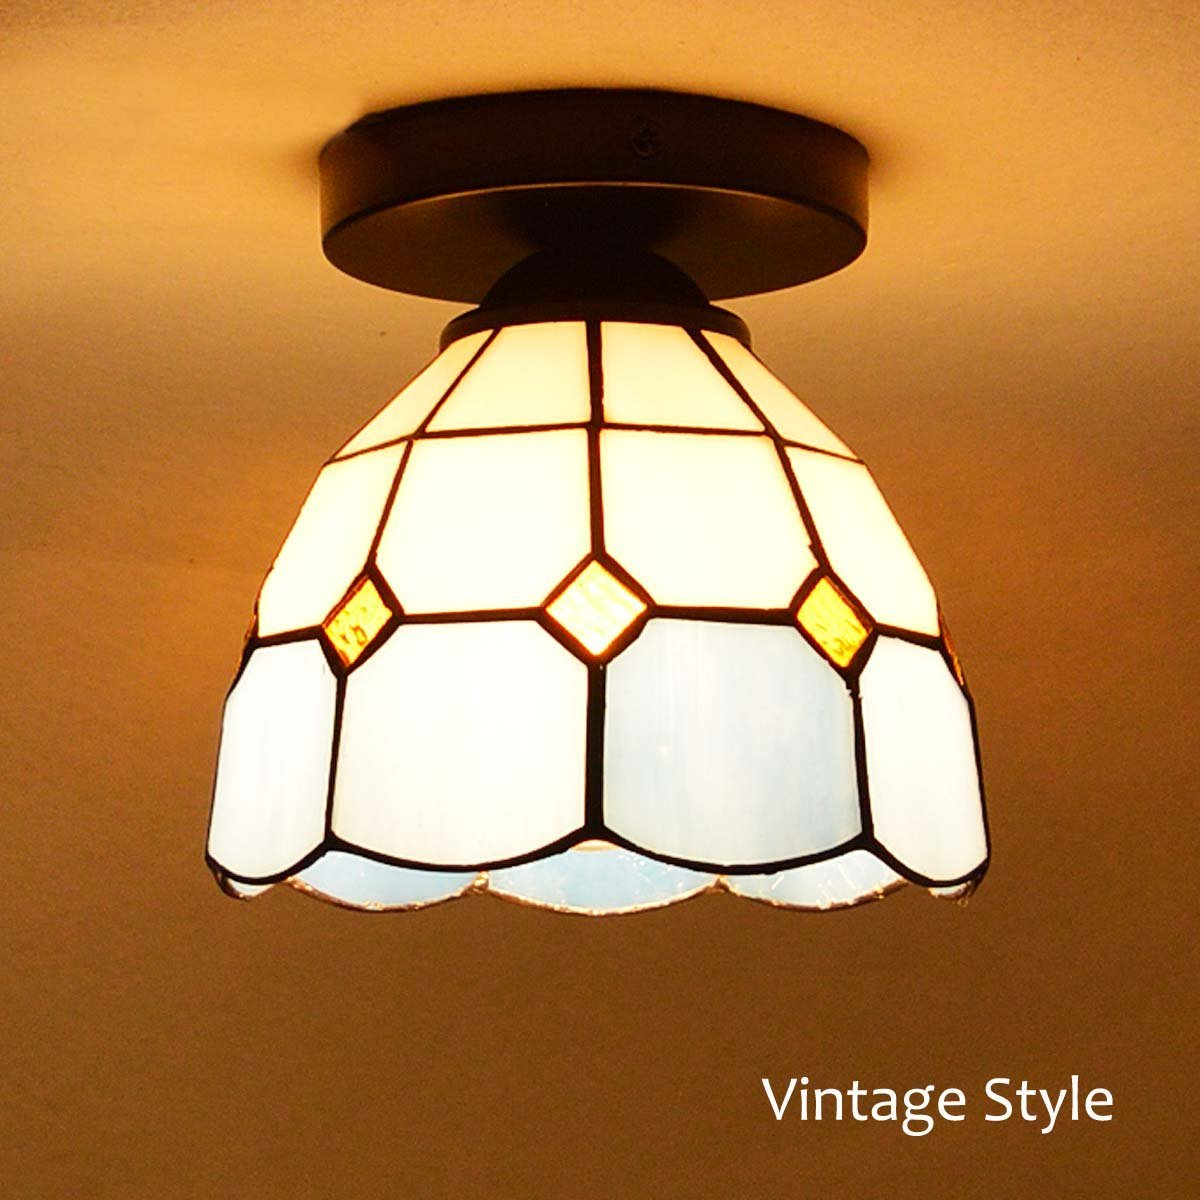 GLW Semi-Flush Mount Loft Industrial Glass Wall Lamp Fixture Corridor Tiffany Style Sconce Indoor Vintage RetroGLW Semi-Flush Mount Loft Industrial Glass Wall Lamp Fixture Corridor Tiffany Style Sconce Indoor Vintage Retro